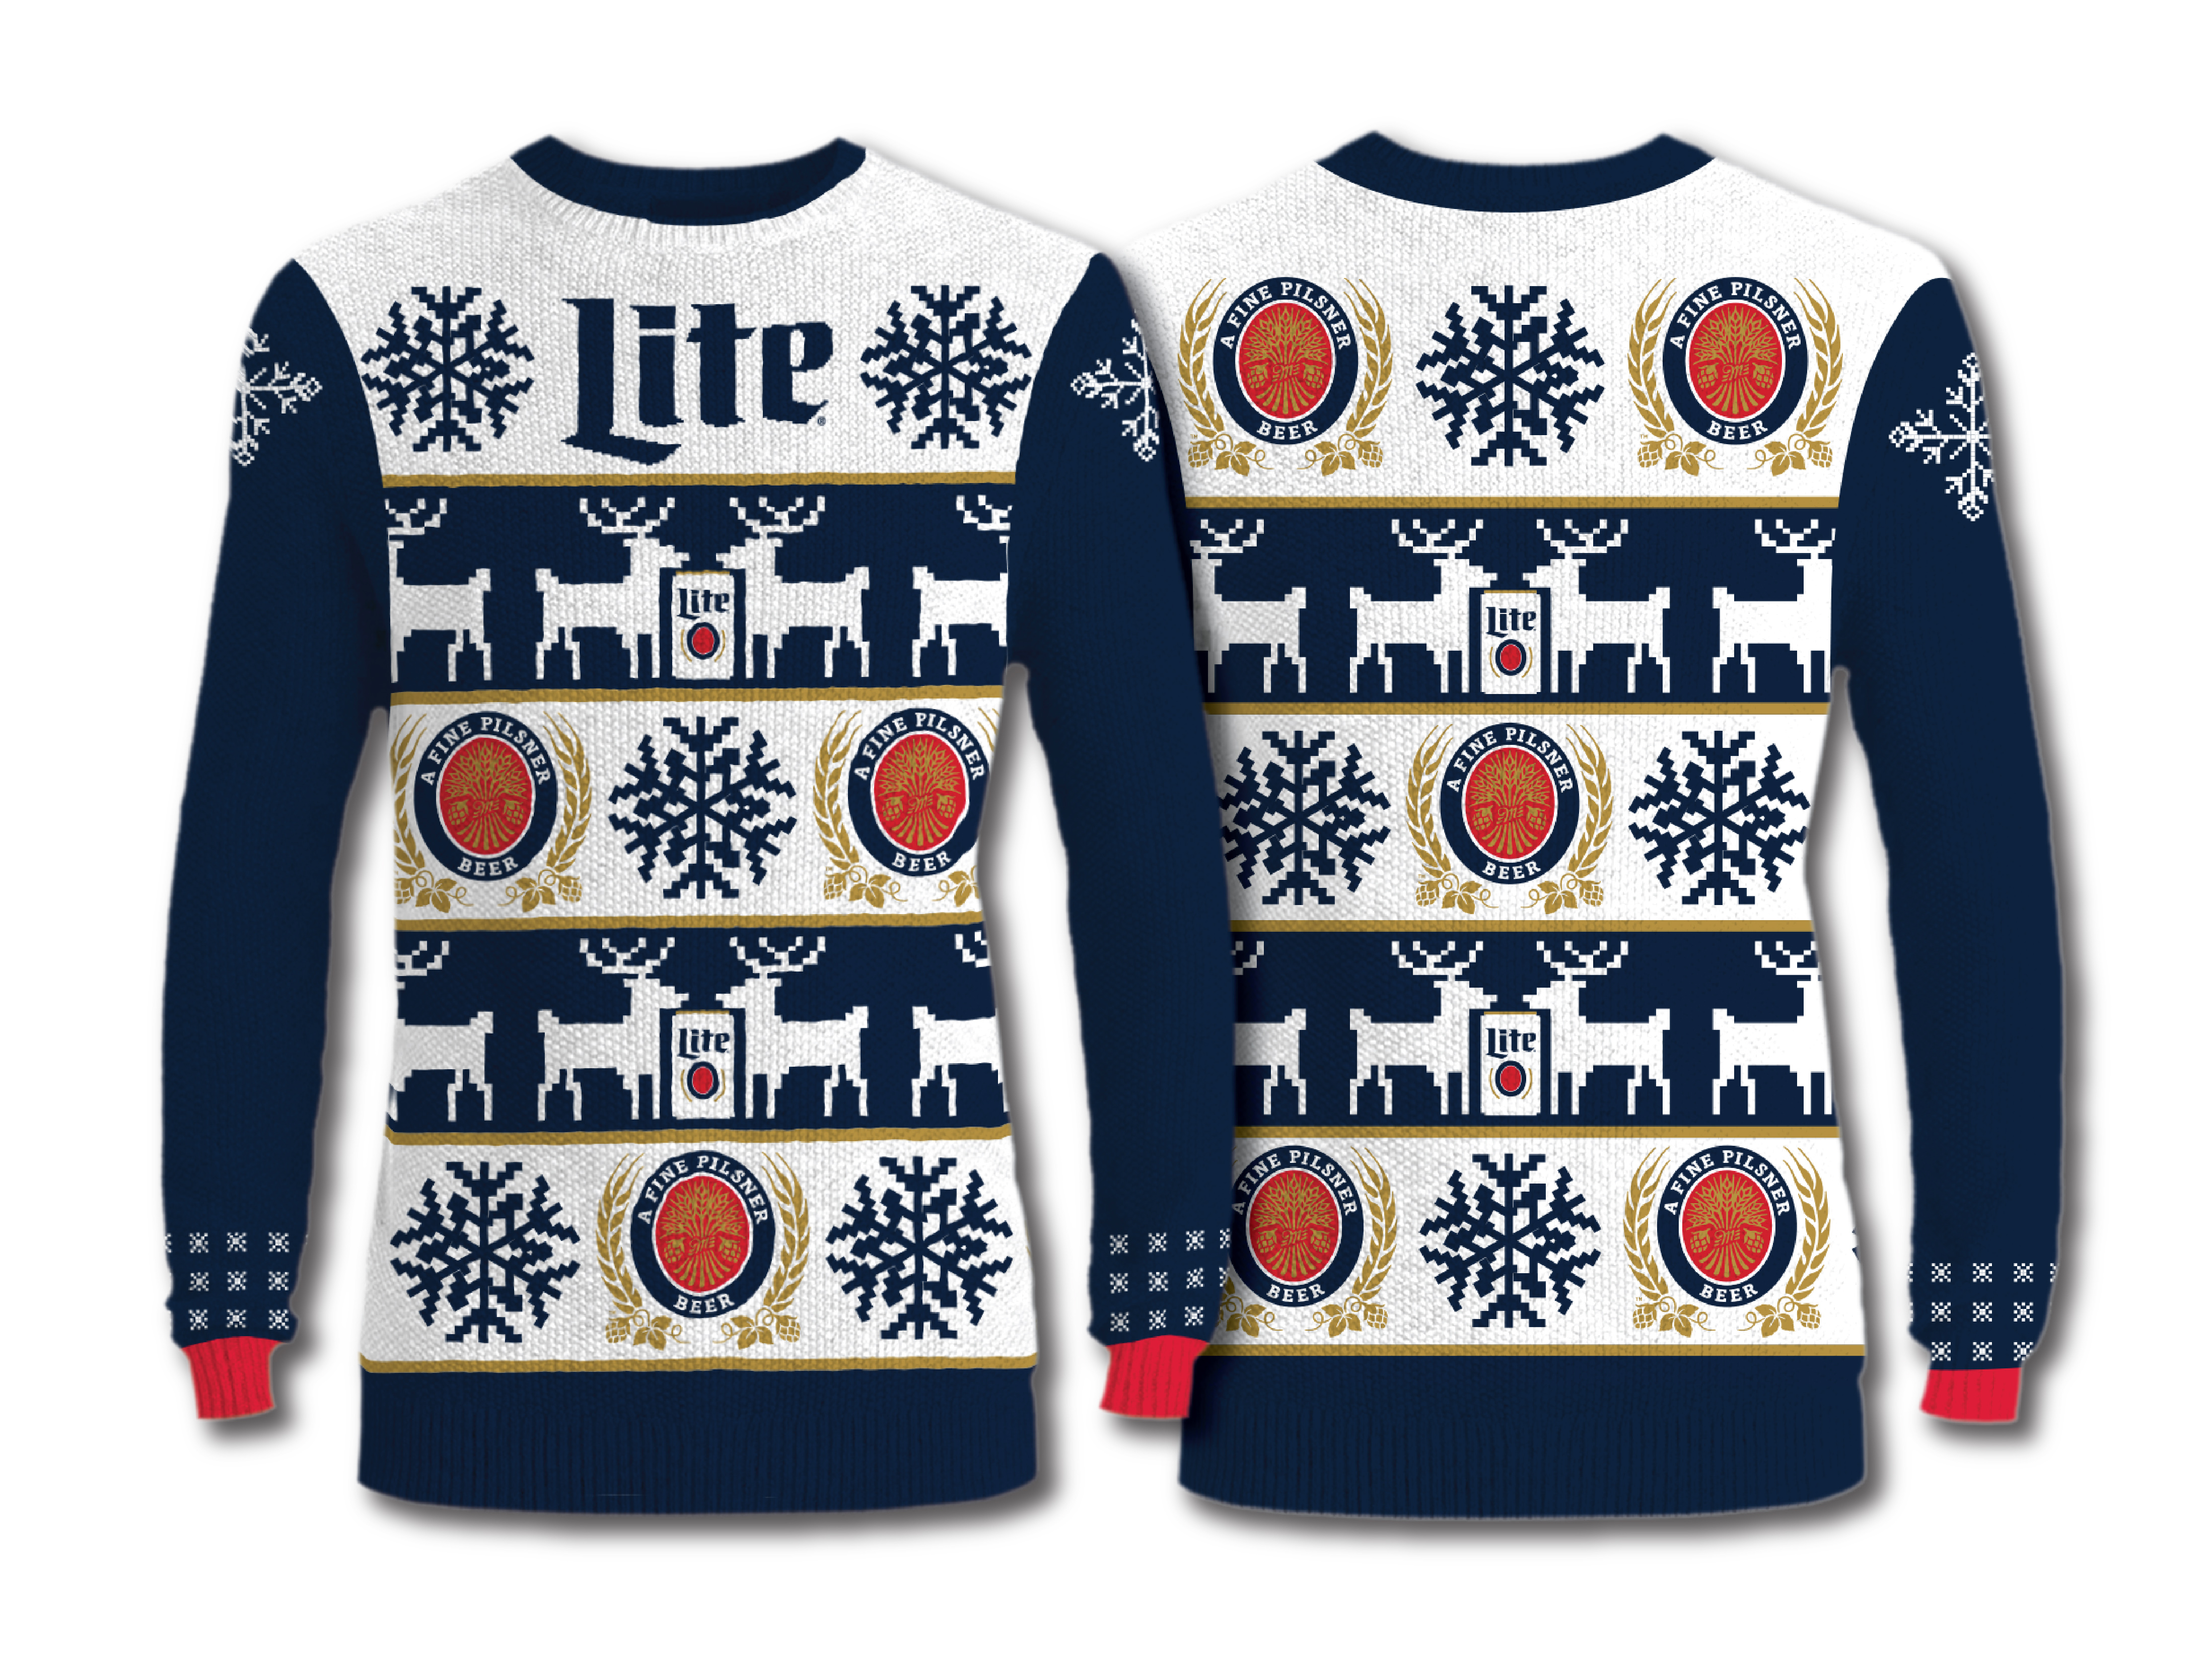 Beer Christmas Sweater.Miller Lite Gets Ugly For The Holidays Millercoors Behind